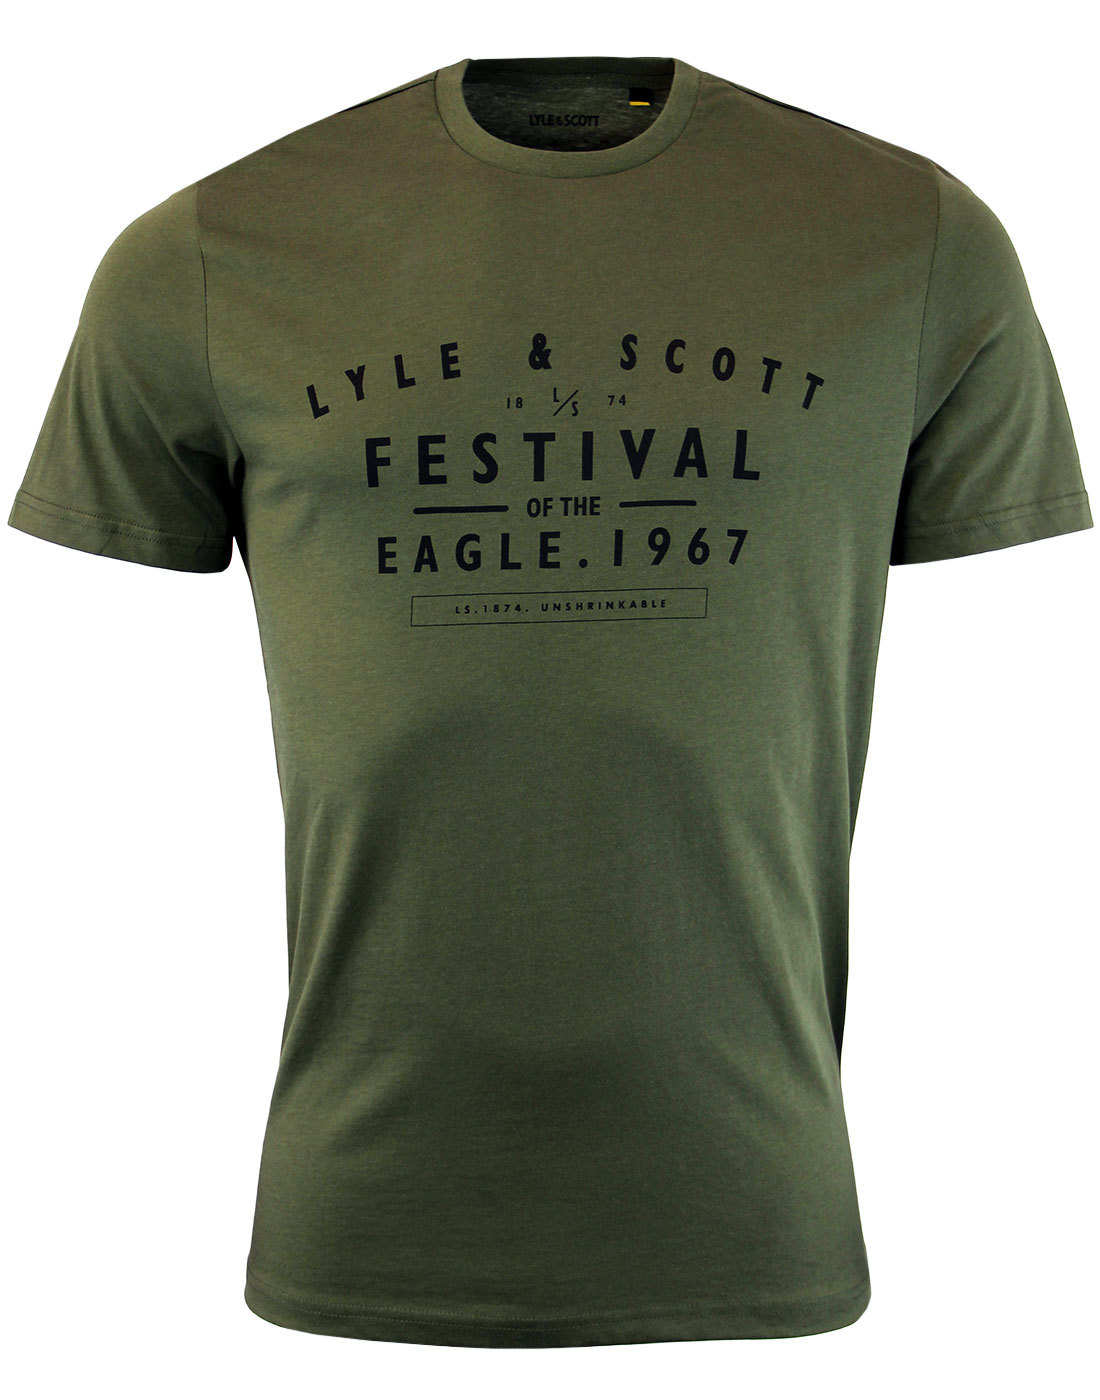 LYLE & SCOTT Retro Indie Festival Graphic Tee O